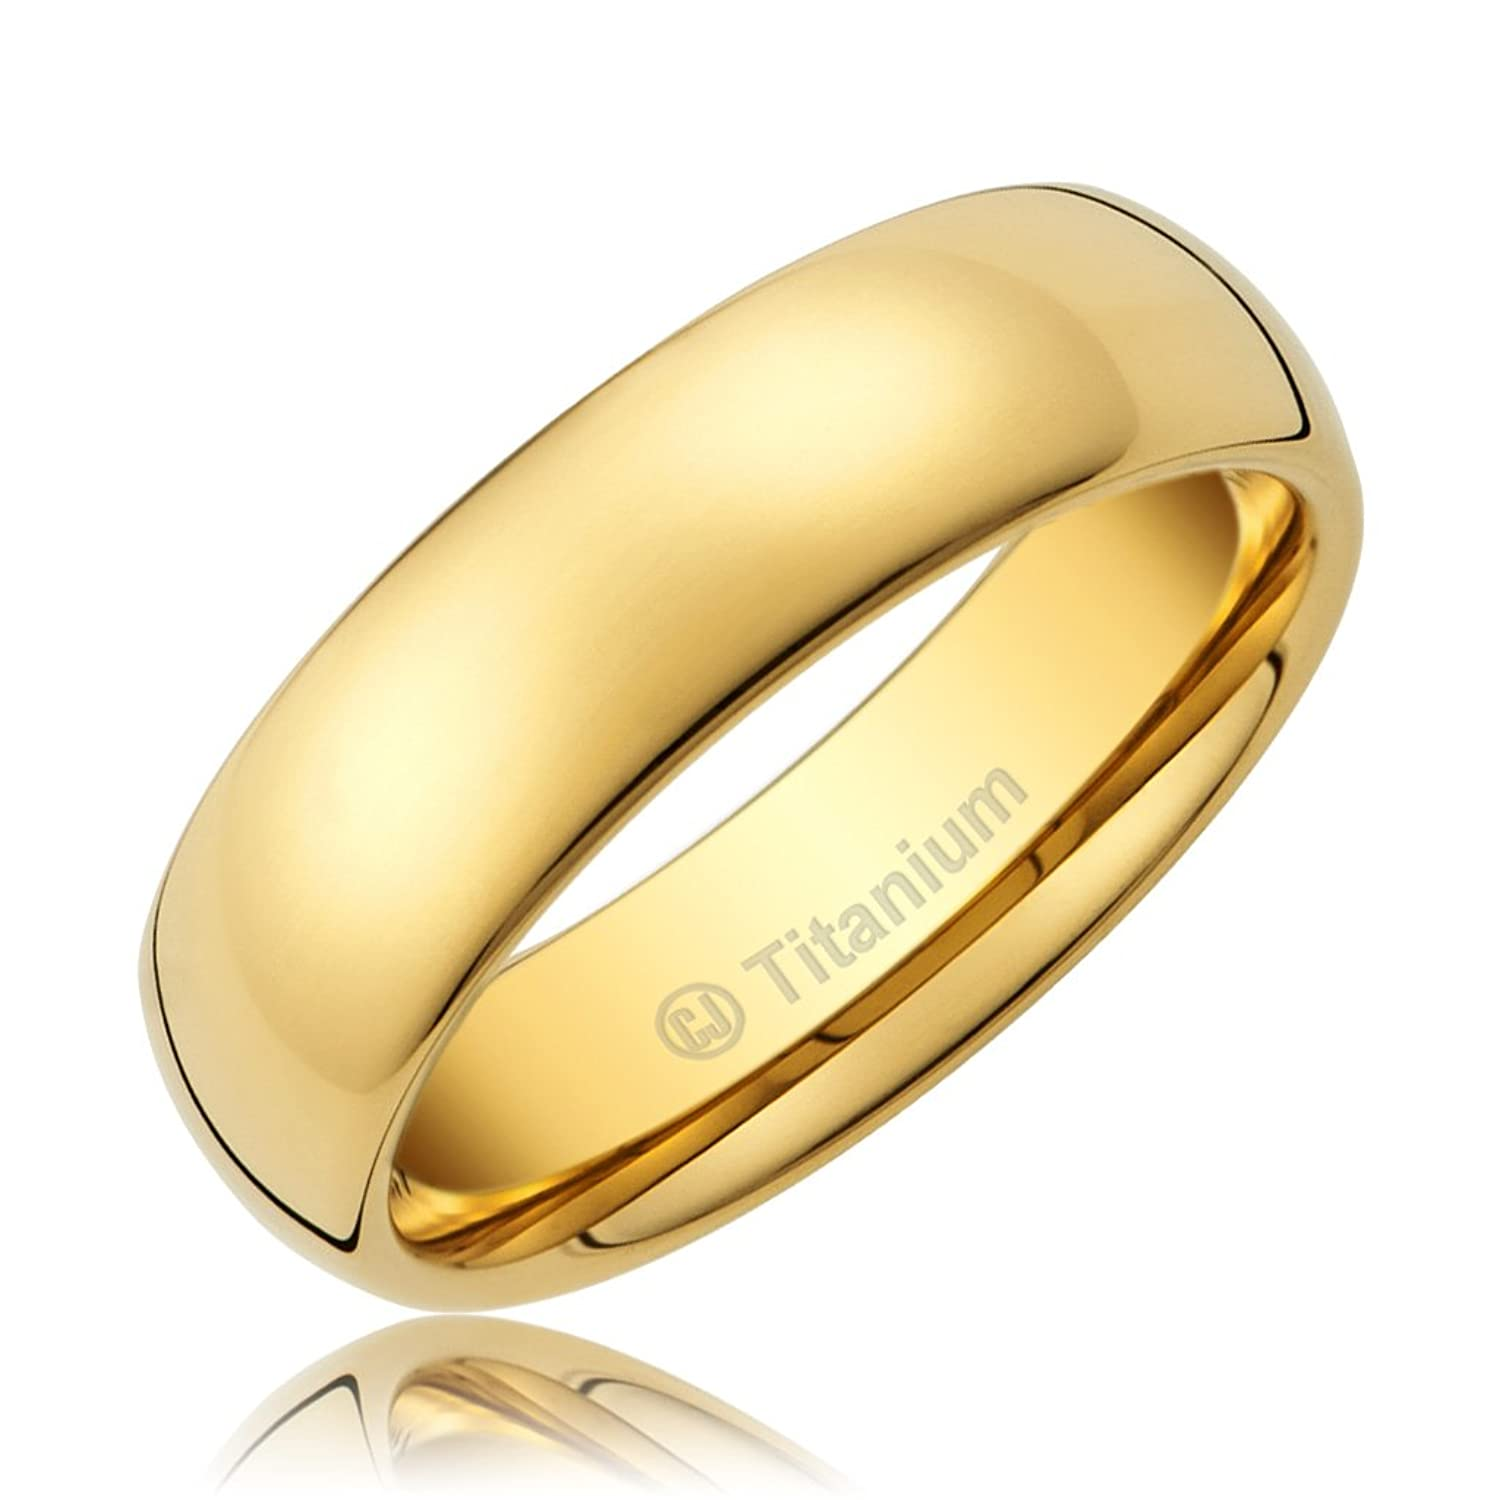 5MM Mens Titanium Ring Wedding Band 14K GoldPlated Polished